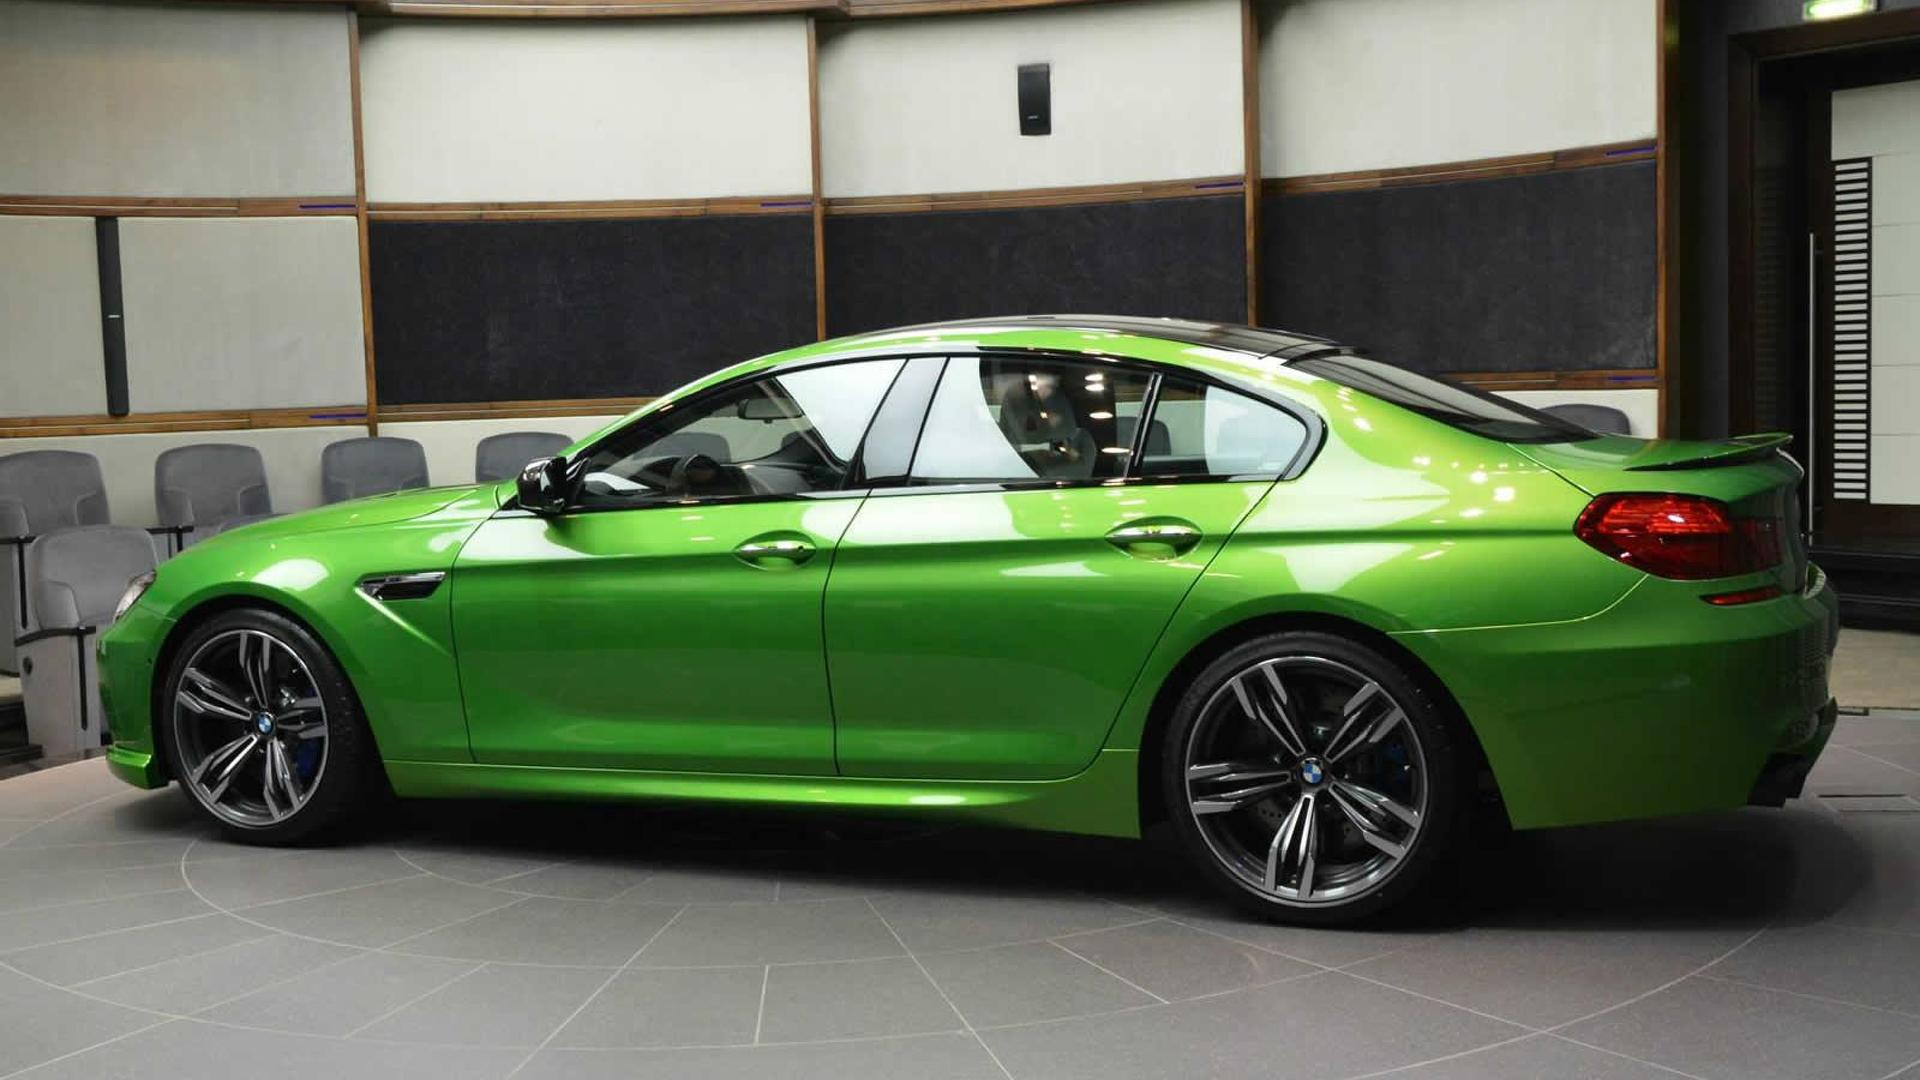 Bmw M6 Gran Coupe >> Heavily Modified Bmw M6 Gran Coupe In Java Green Looks Like No Other